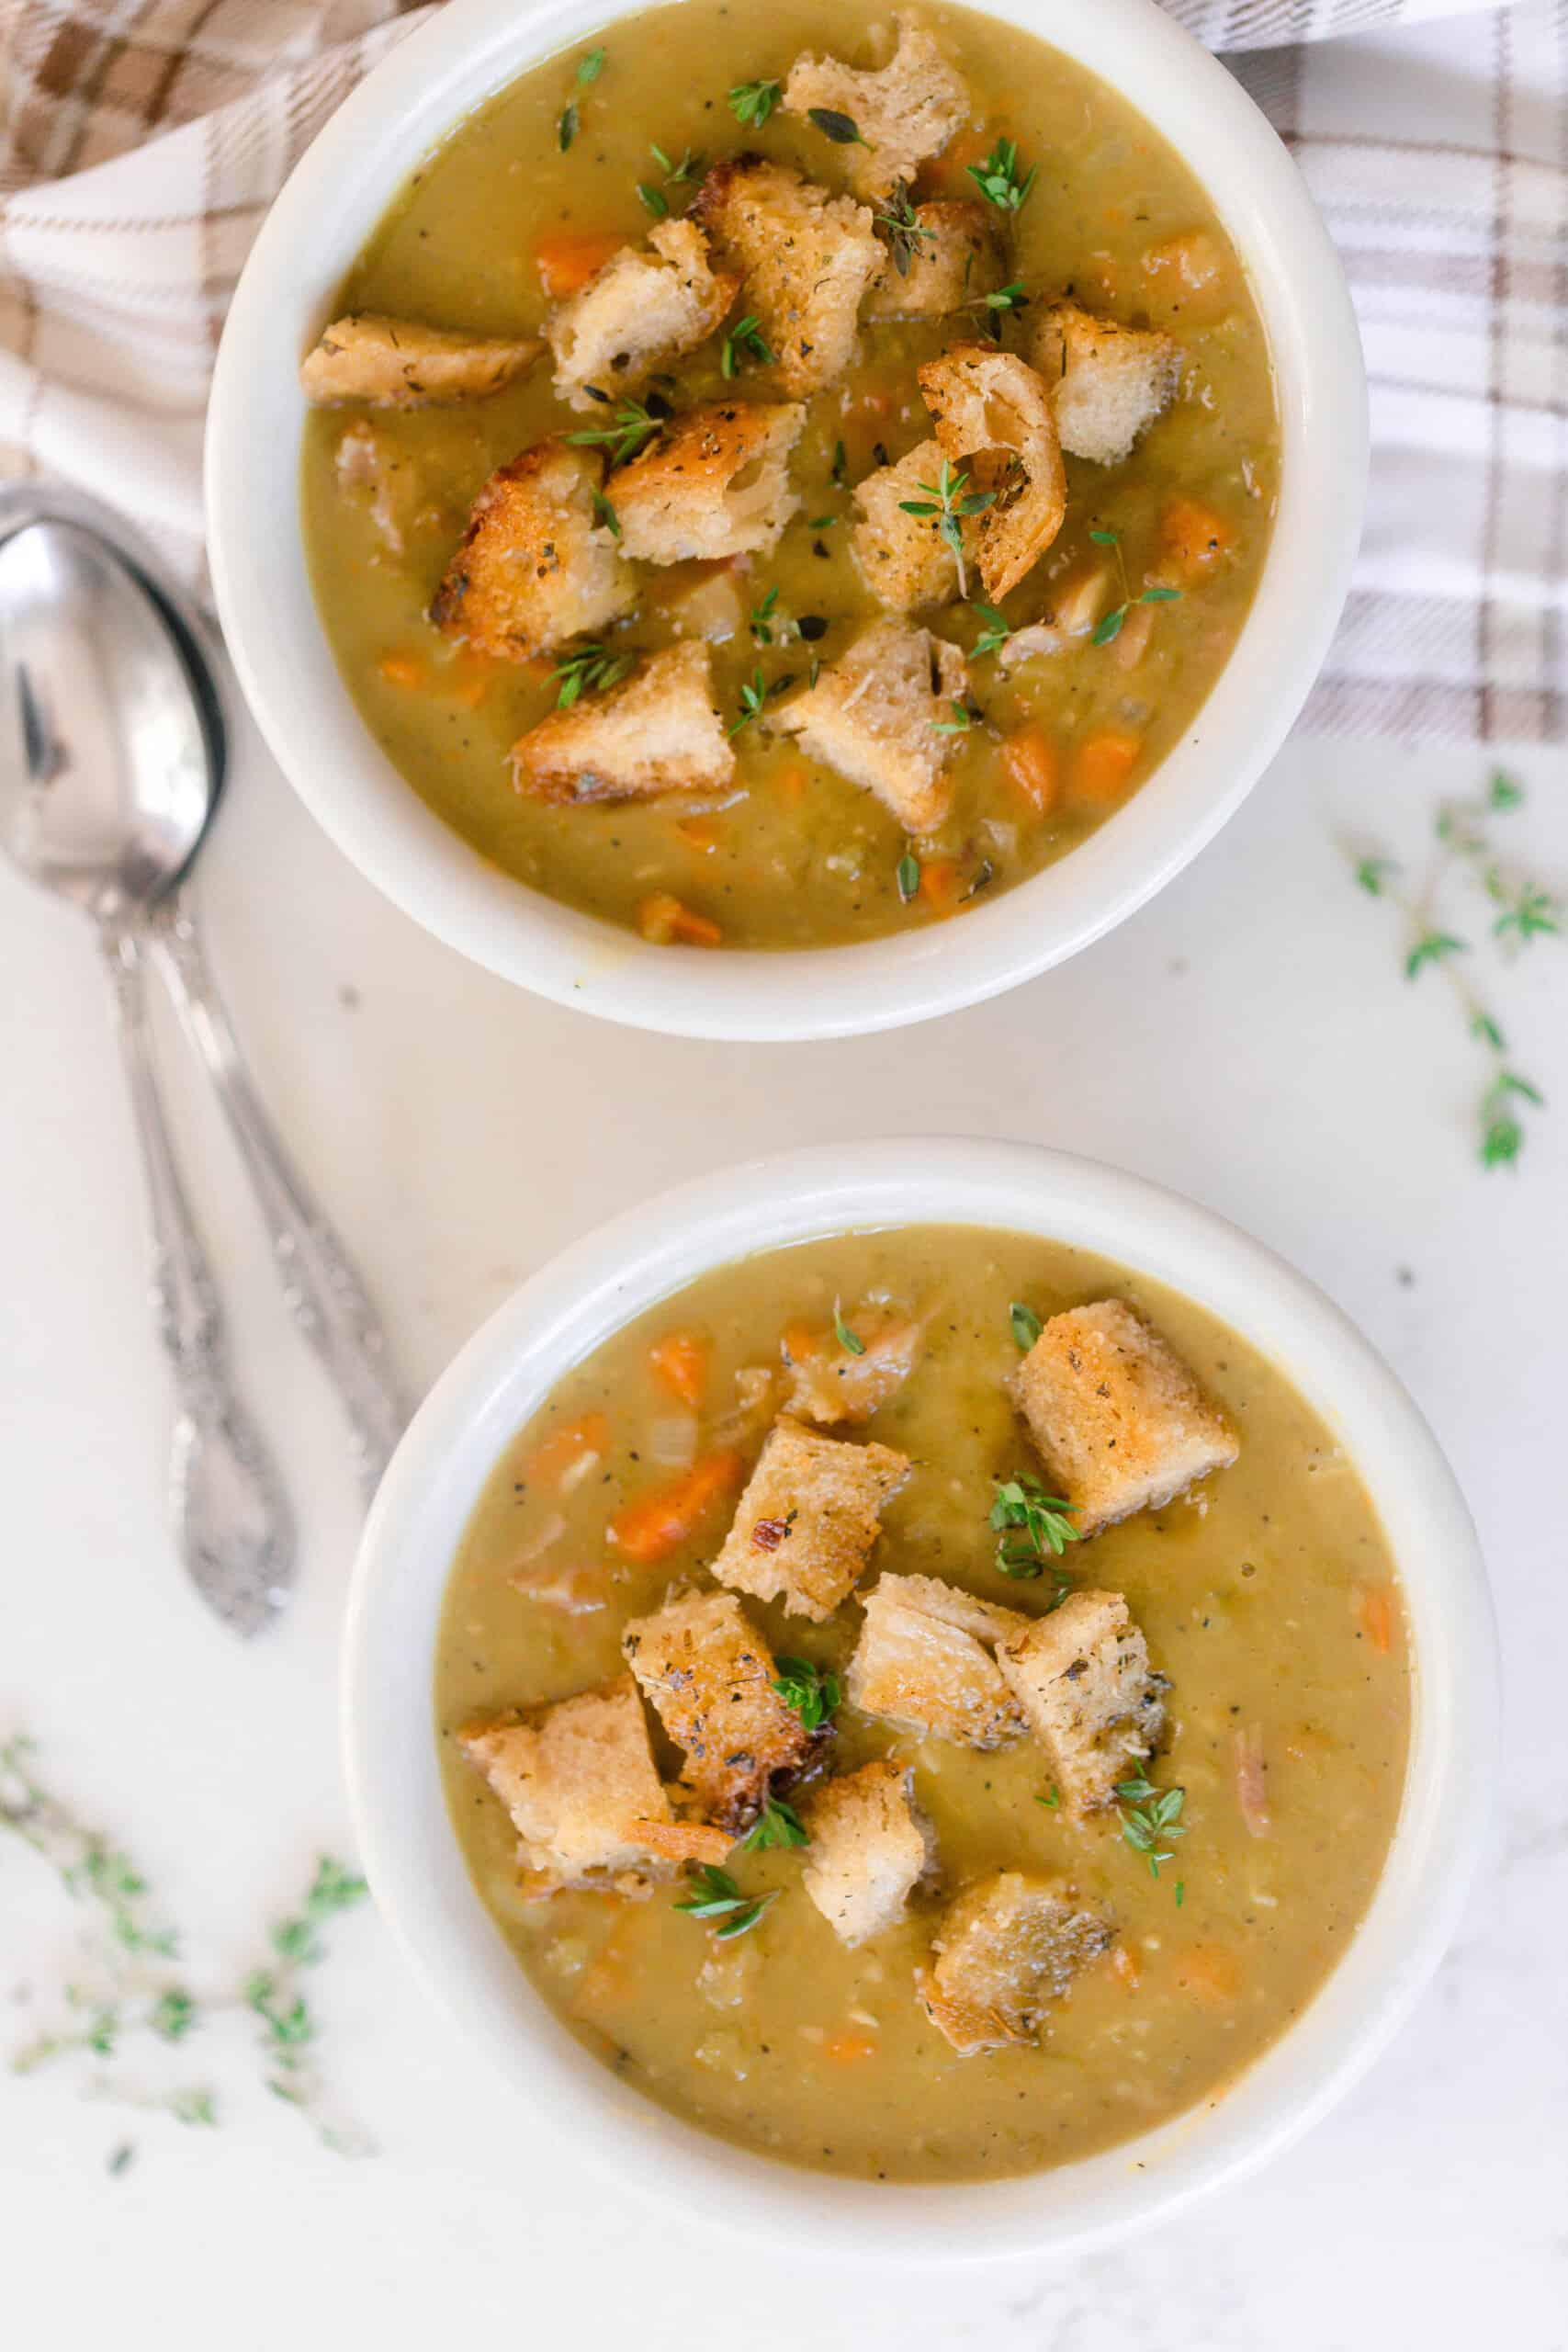 overhead photo of two bowls of homemade split pea soup topped with thyme and sourdough croutons on a white countertop and two spoons to the left and a plaid towel in the top right corner.